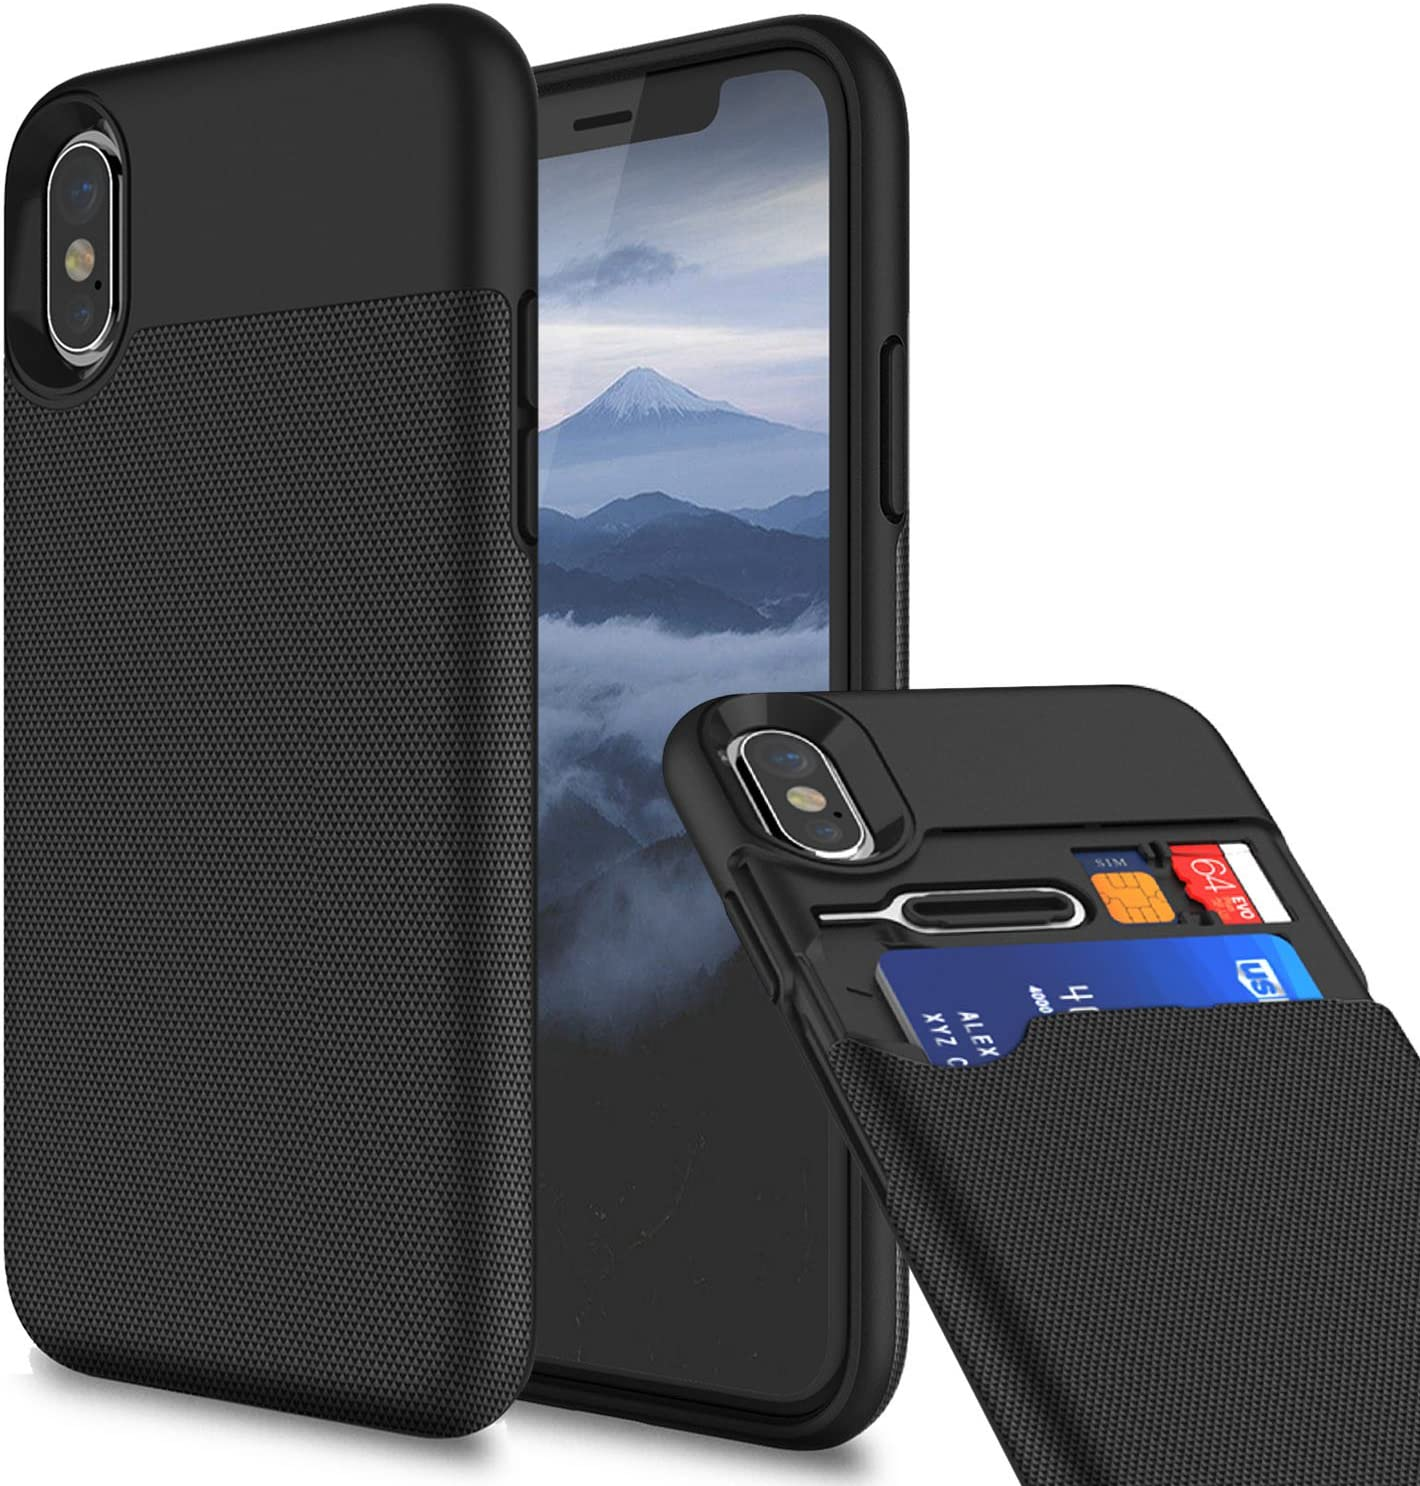 KHOMO - iPhone X Case, iPhone X Wallet Case Shockproof Protective Case Cover with Credit Card Slots Holder for Apple iPhone X - Black